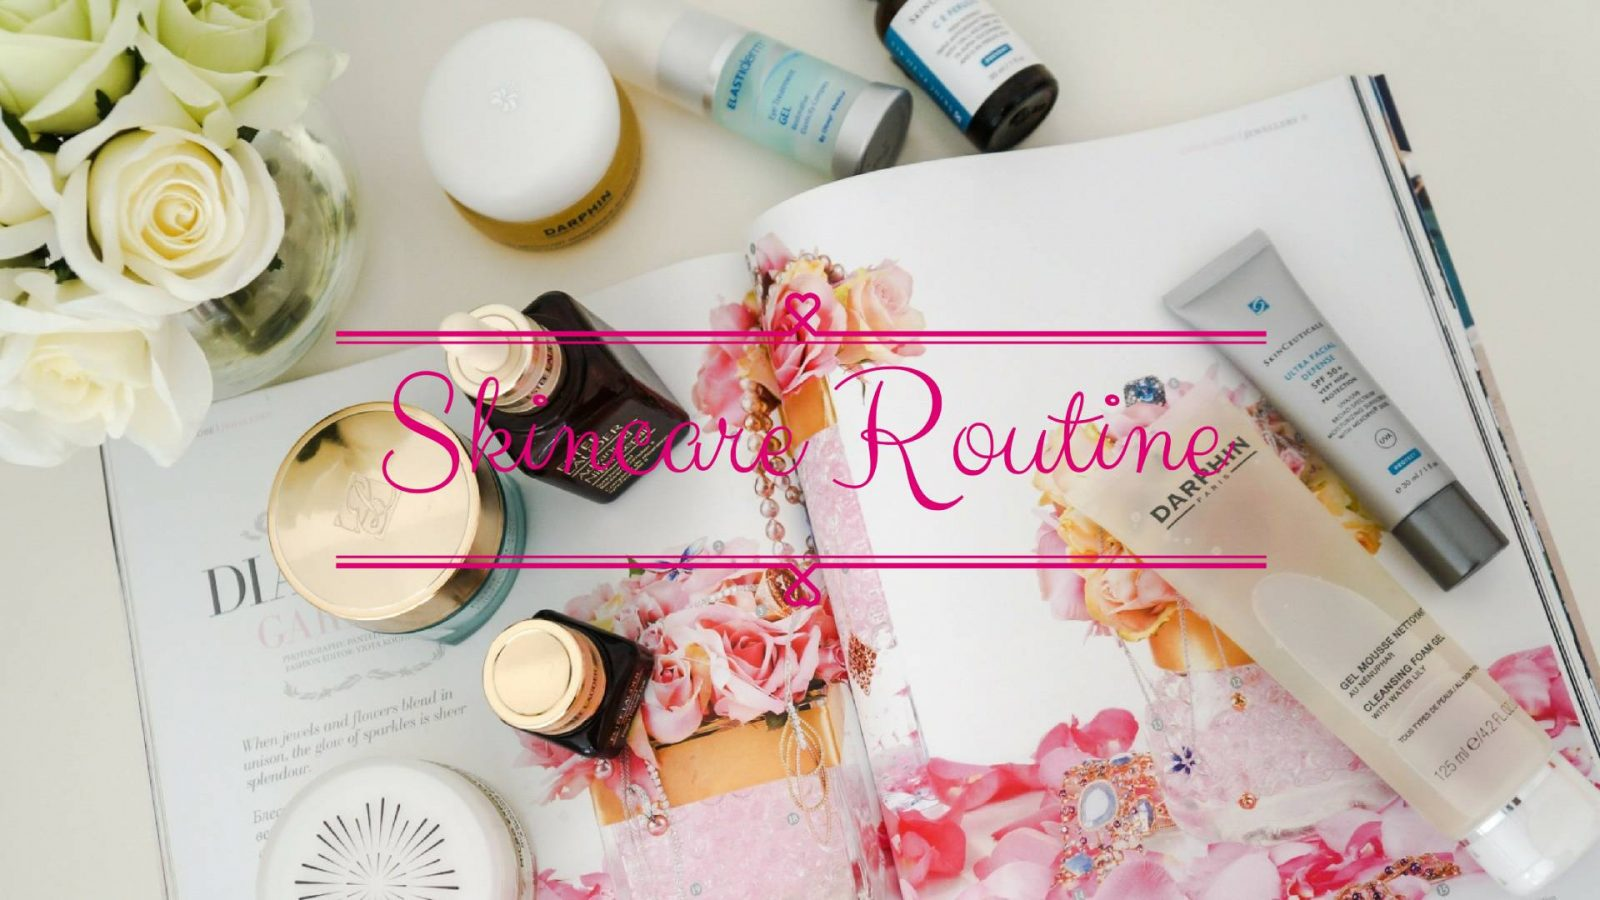 NEW Skincare Routine Post Pregnancy